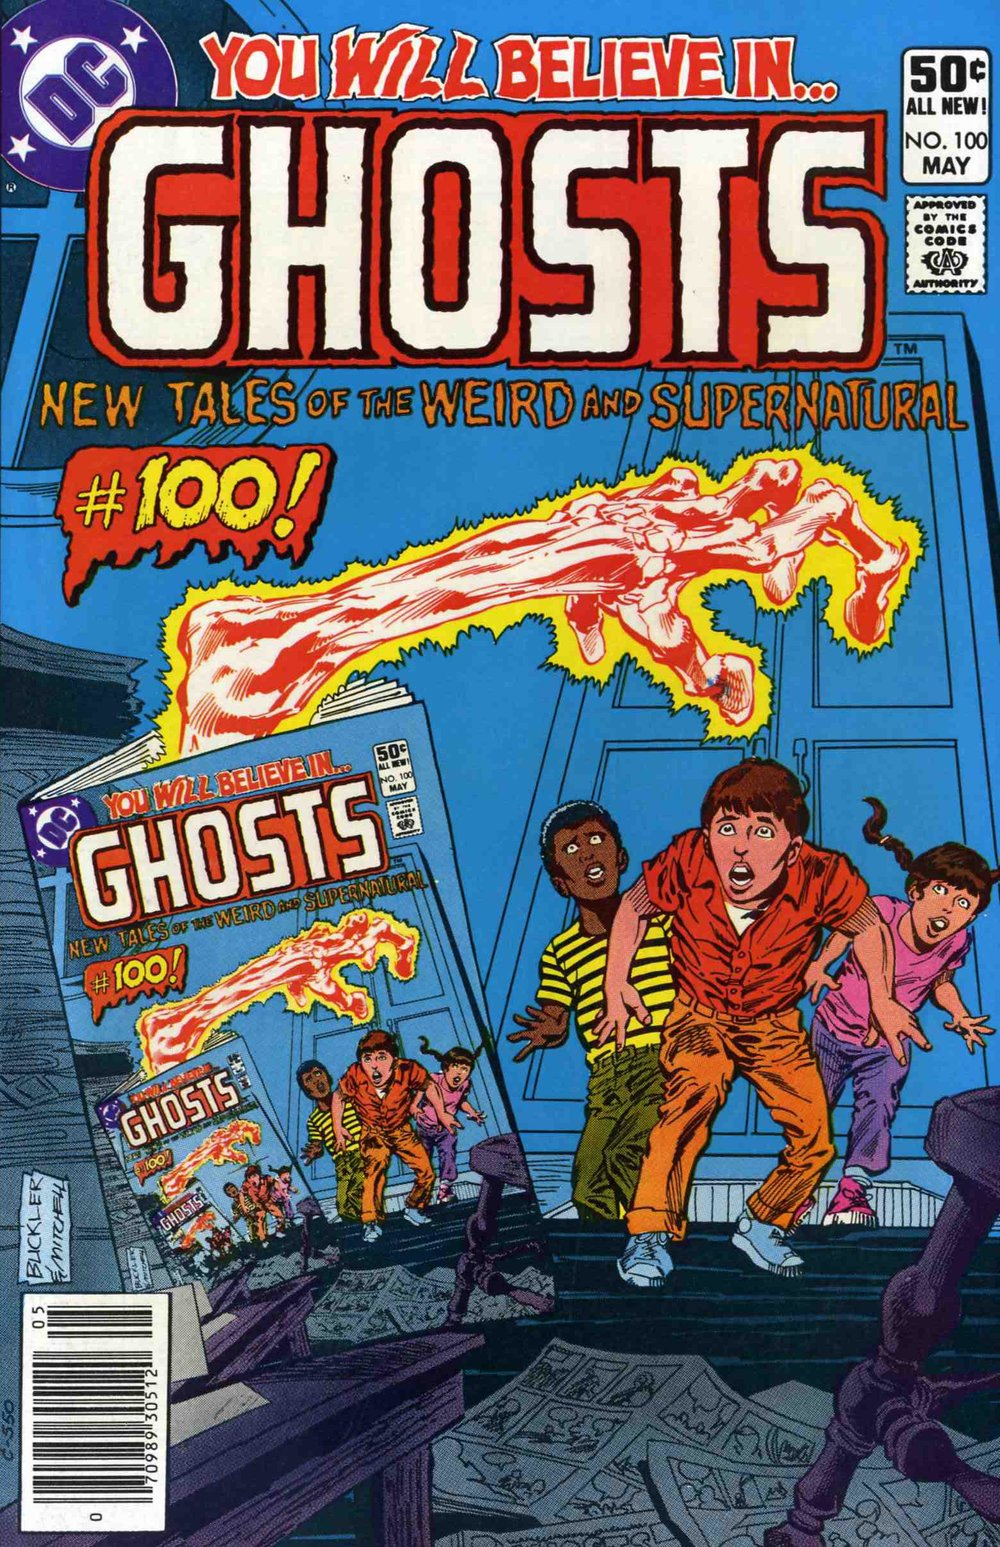 Ghosts (1971) #100, cover penciled by Rich Buckler & inked by Steve Mitchell.